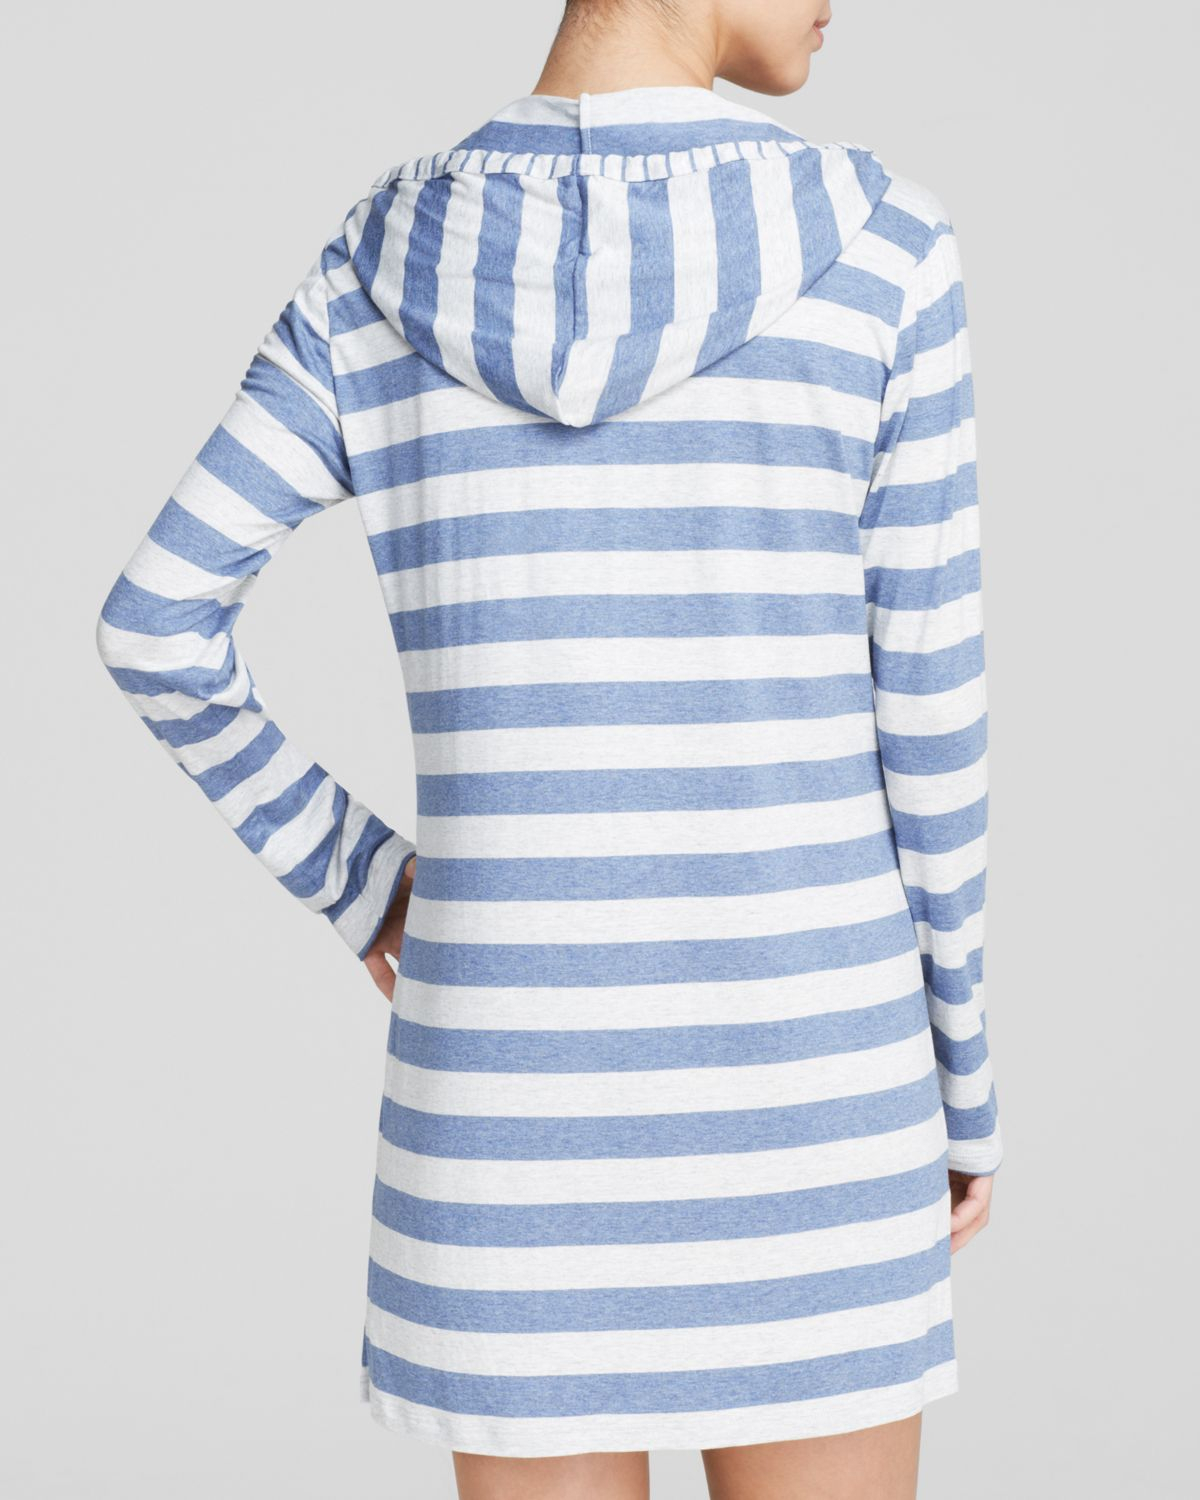 b5faa94a83 Lyst - Tommy Bahama Stripe Hoodie Swim Cover Up in Blue